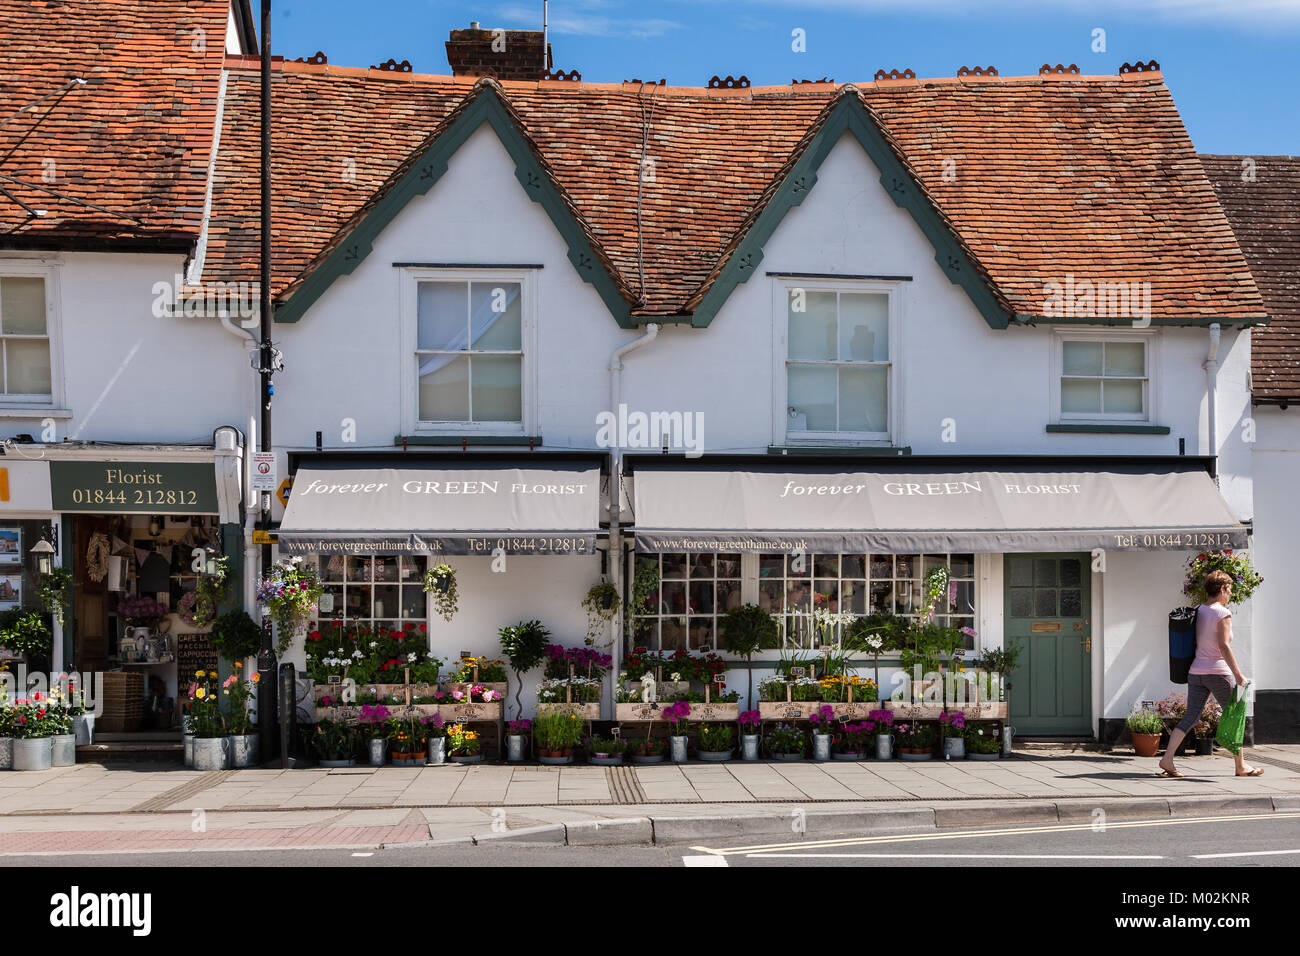 flower shop High Street Thame Oxfordshire Uk - Stock Image